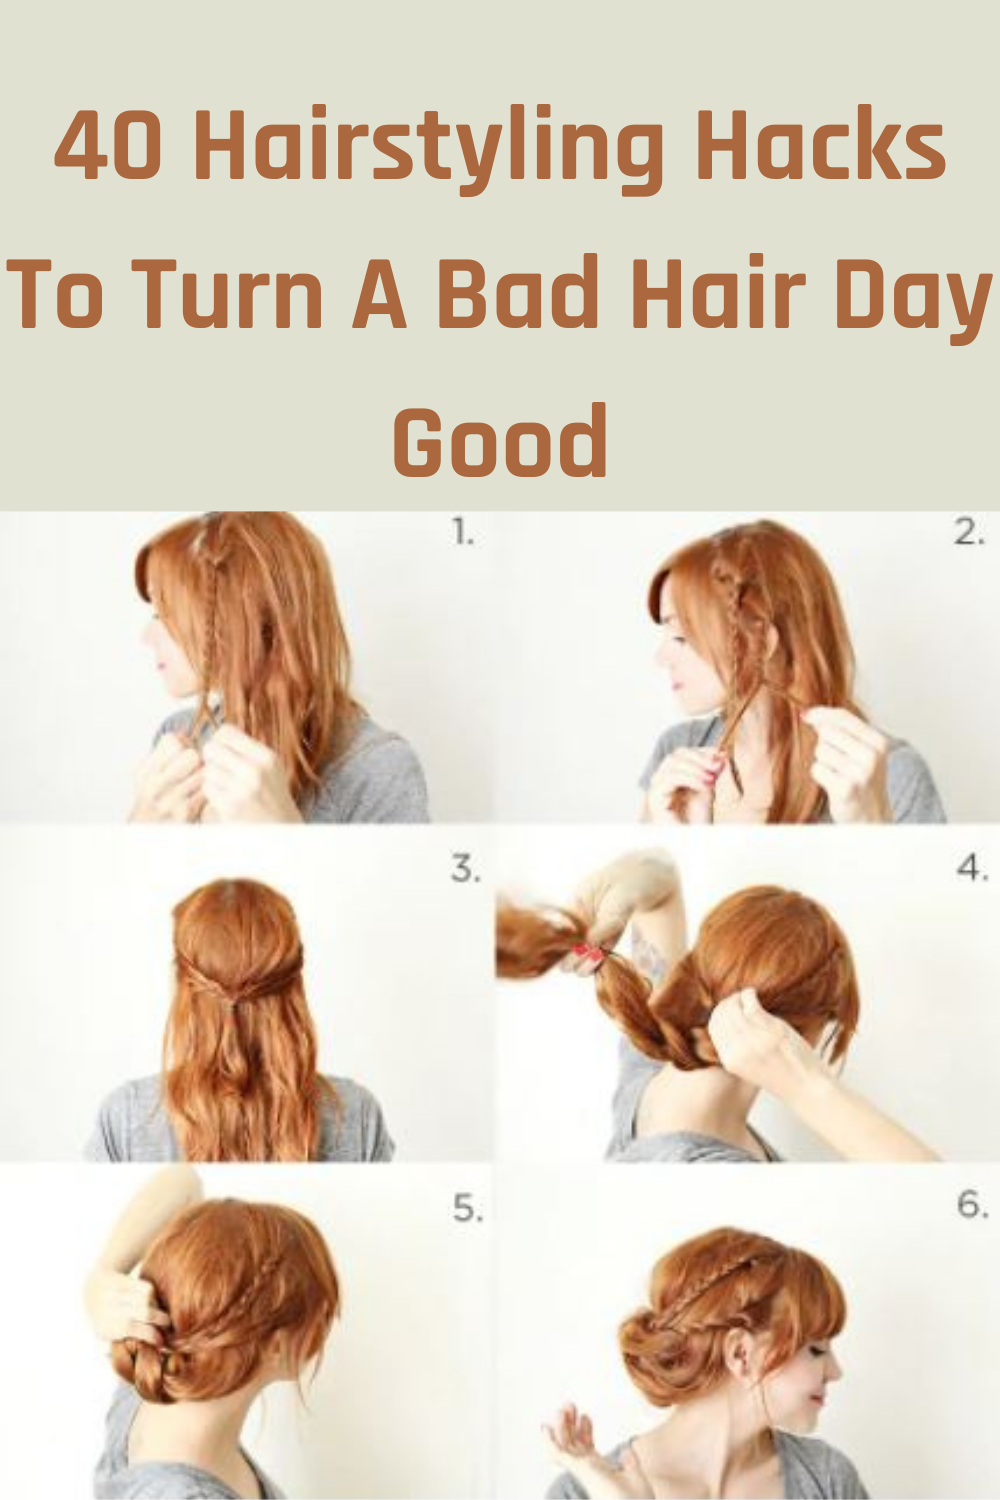 40 Hairstyling Hacks That Turn Bad Hair Days Into Good Ones In 2020 Bad Hair Hair Hacks Bad Hair Day